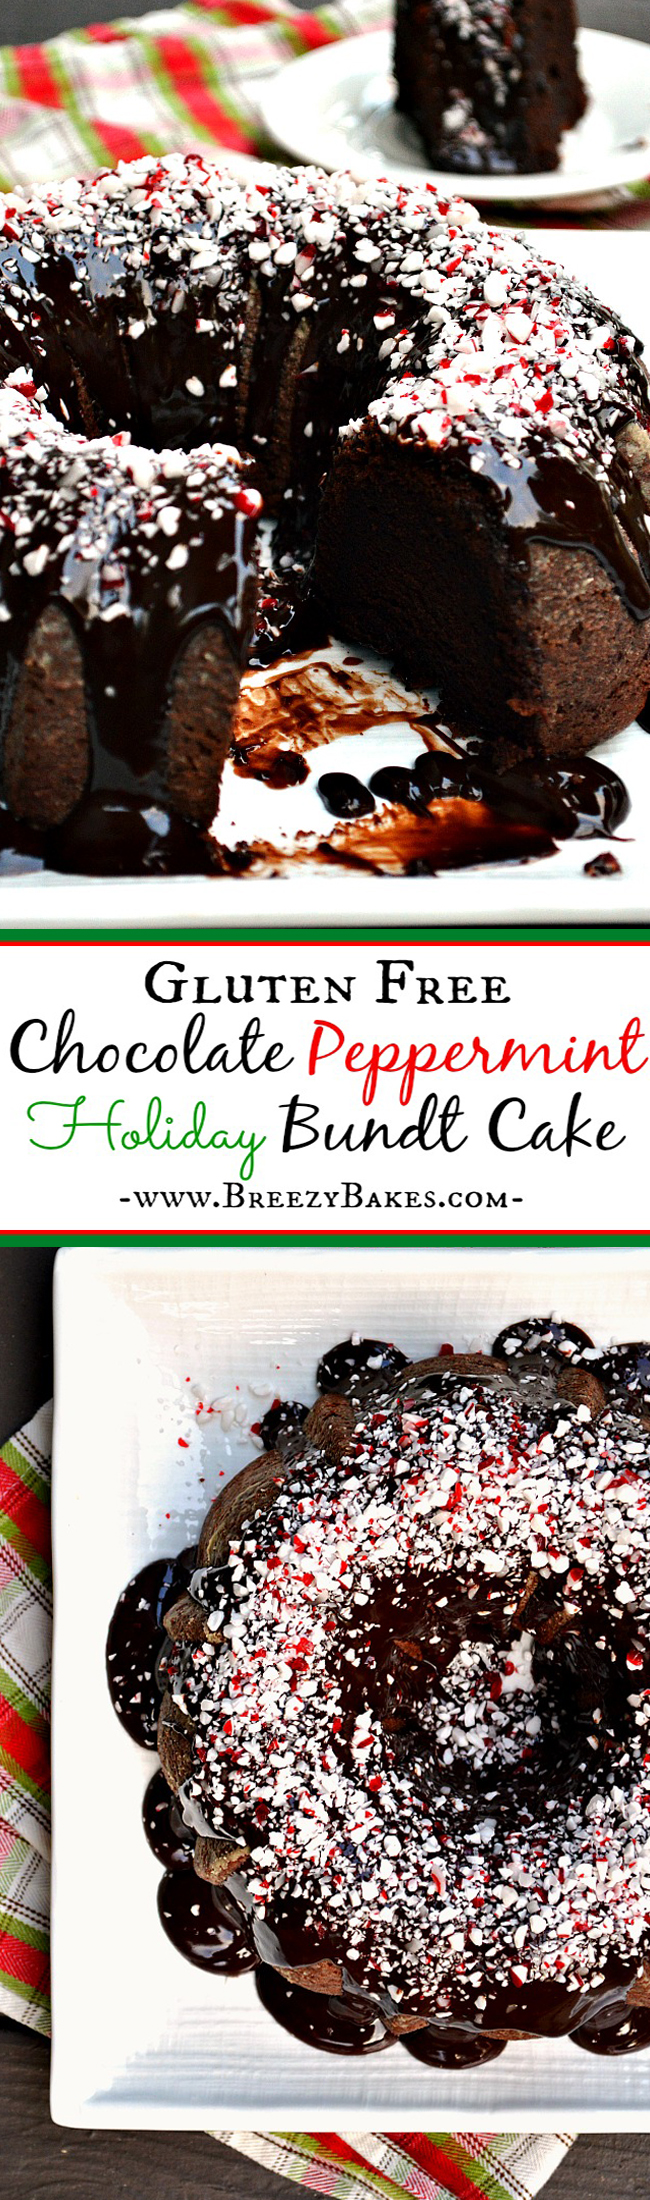 Gluten Free Chocolate Peppermint Bundt Cake - Breezy Bakes